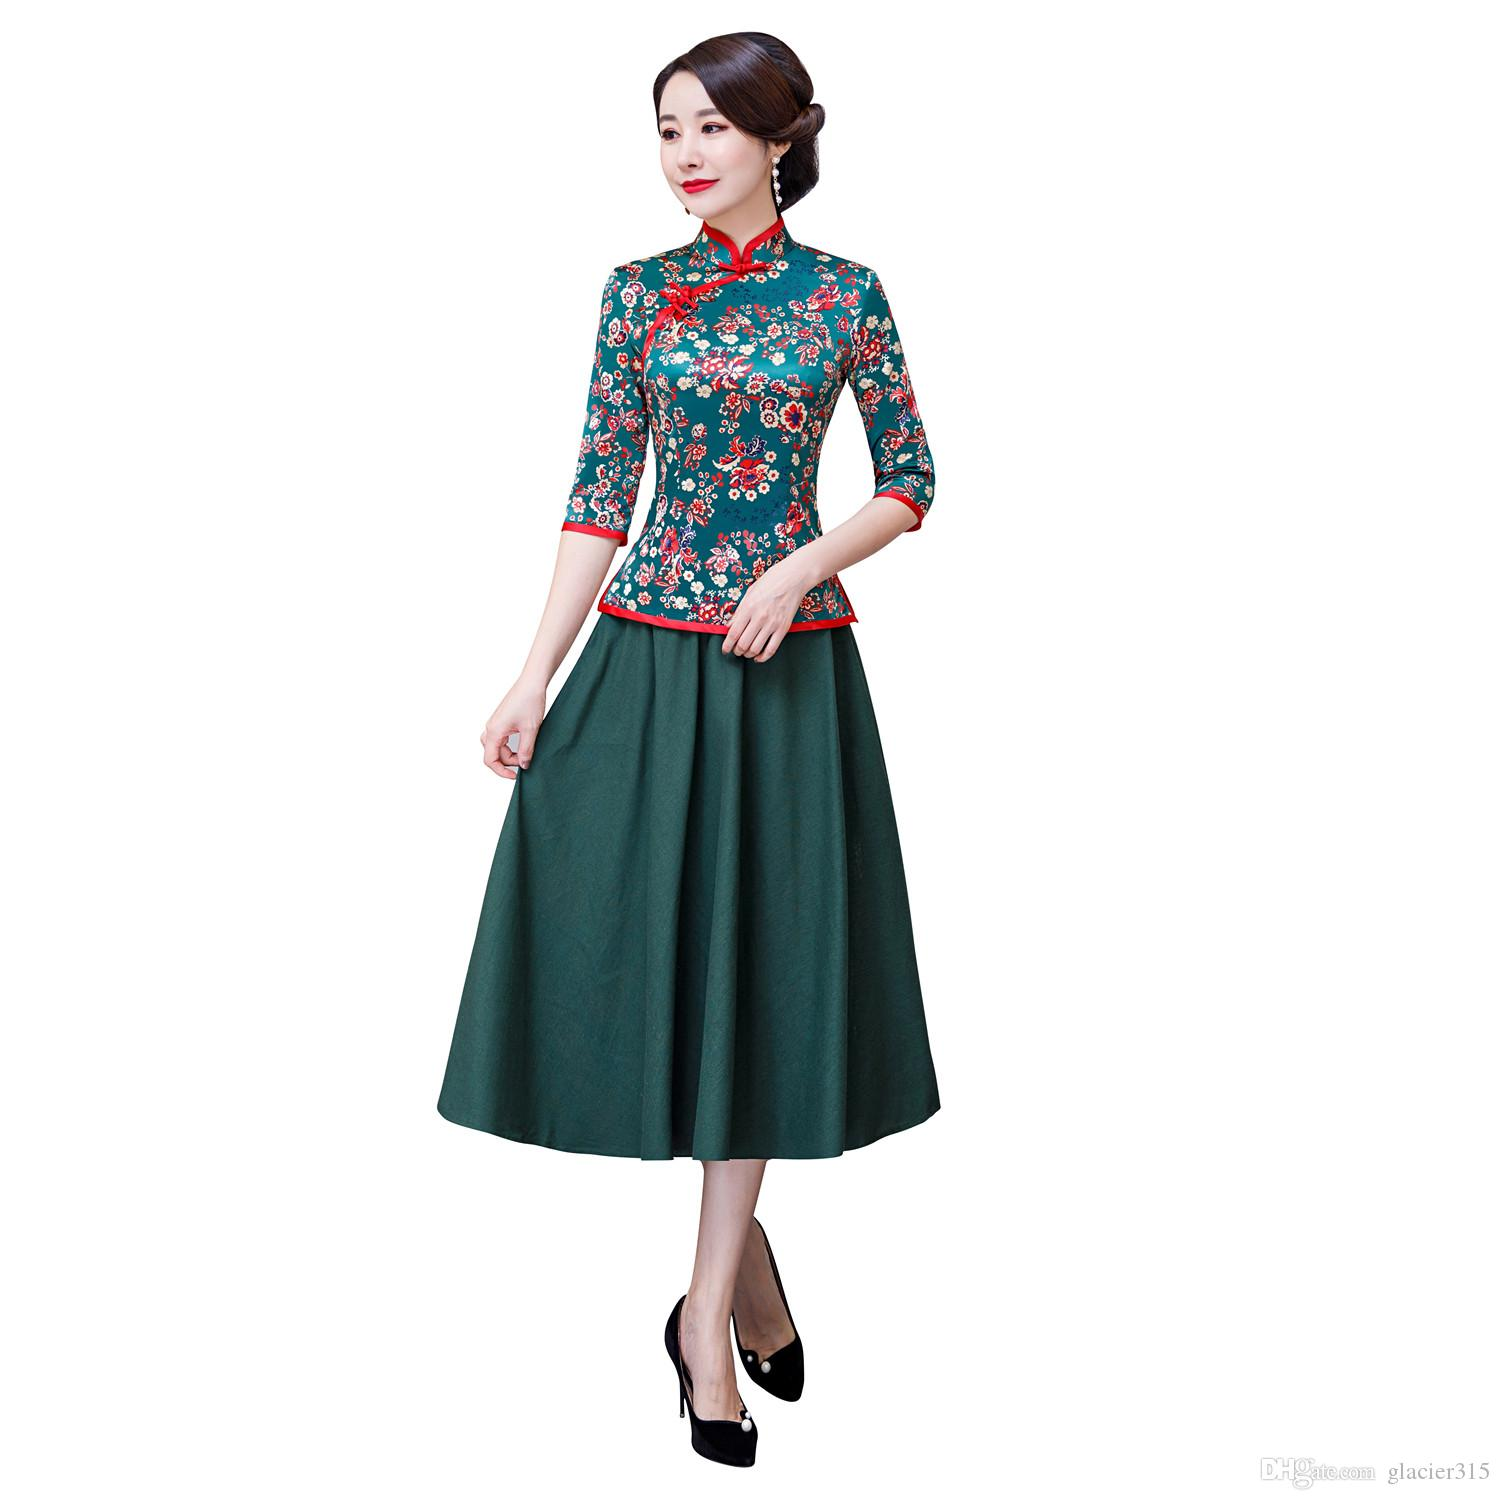 6c219b7b4 Shanghai Story Floral Chinese Traditional Clothing Set Green 3/4 Sleeve Faux  Silk Chinese Cheongsam Top + Skirt Chinese Clothing for Women